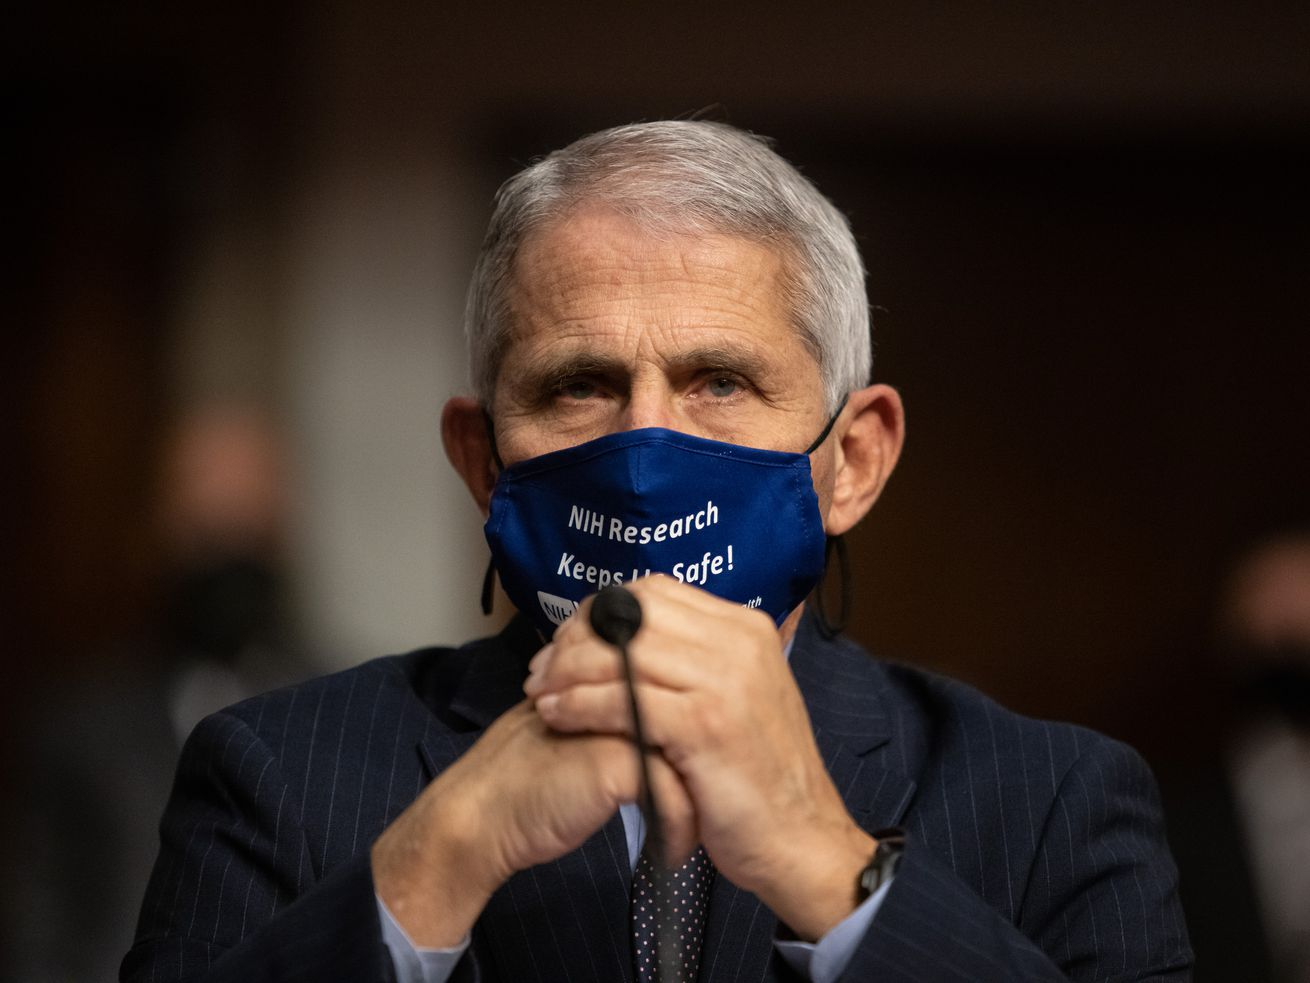 Fauci, in a dark suit and dark blue cloth mask, sits in front of a microphone — without his glasses. His hands are folded in front of his chin.